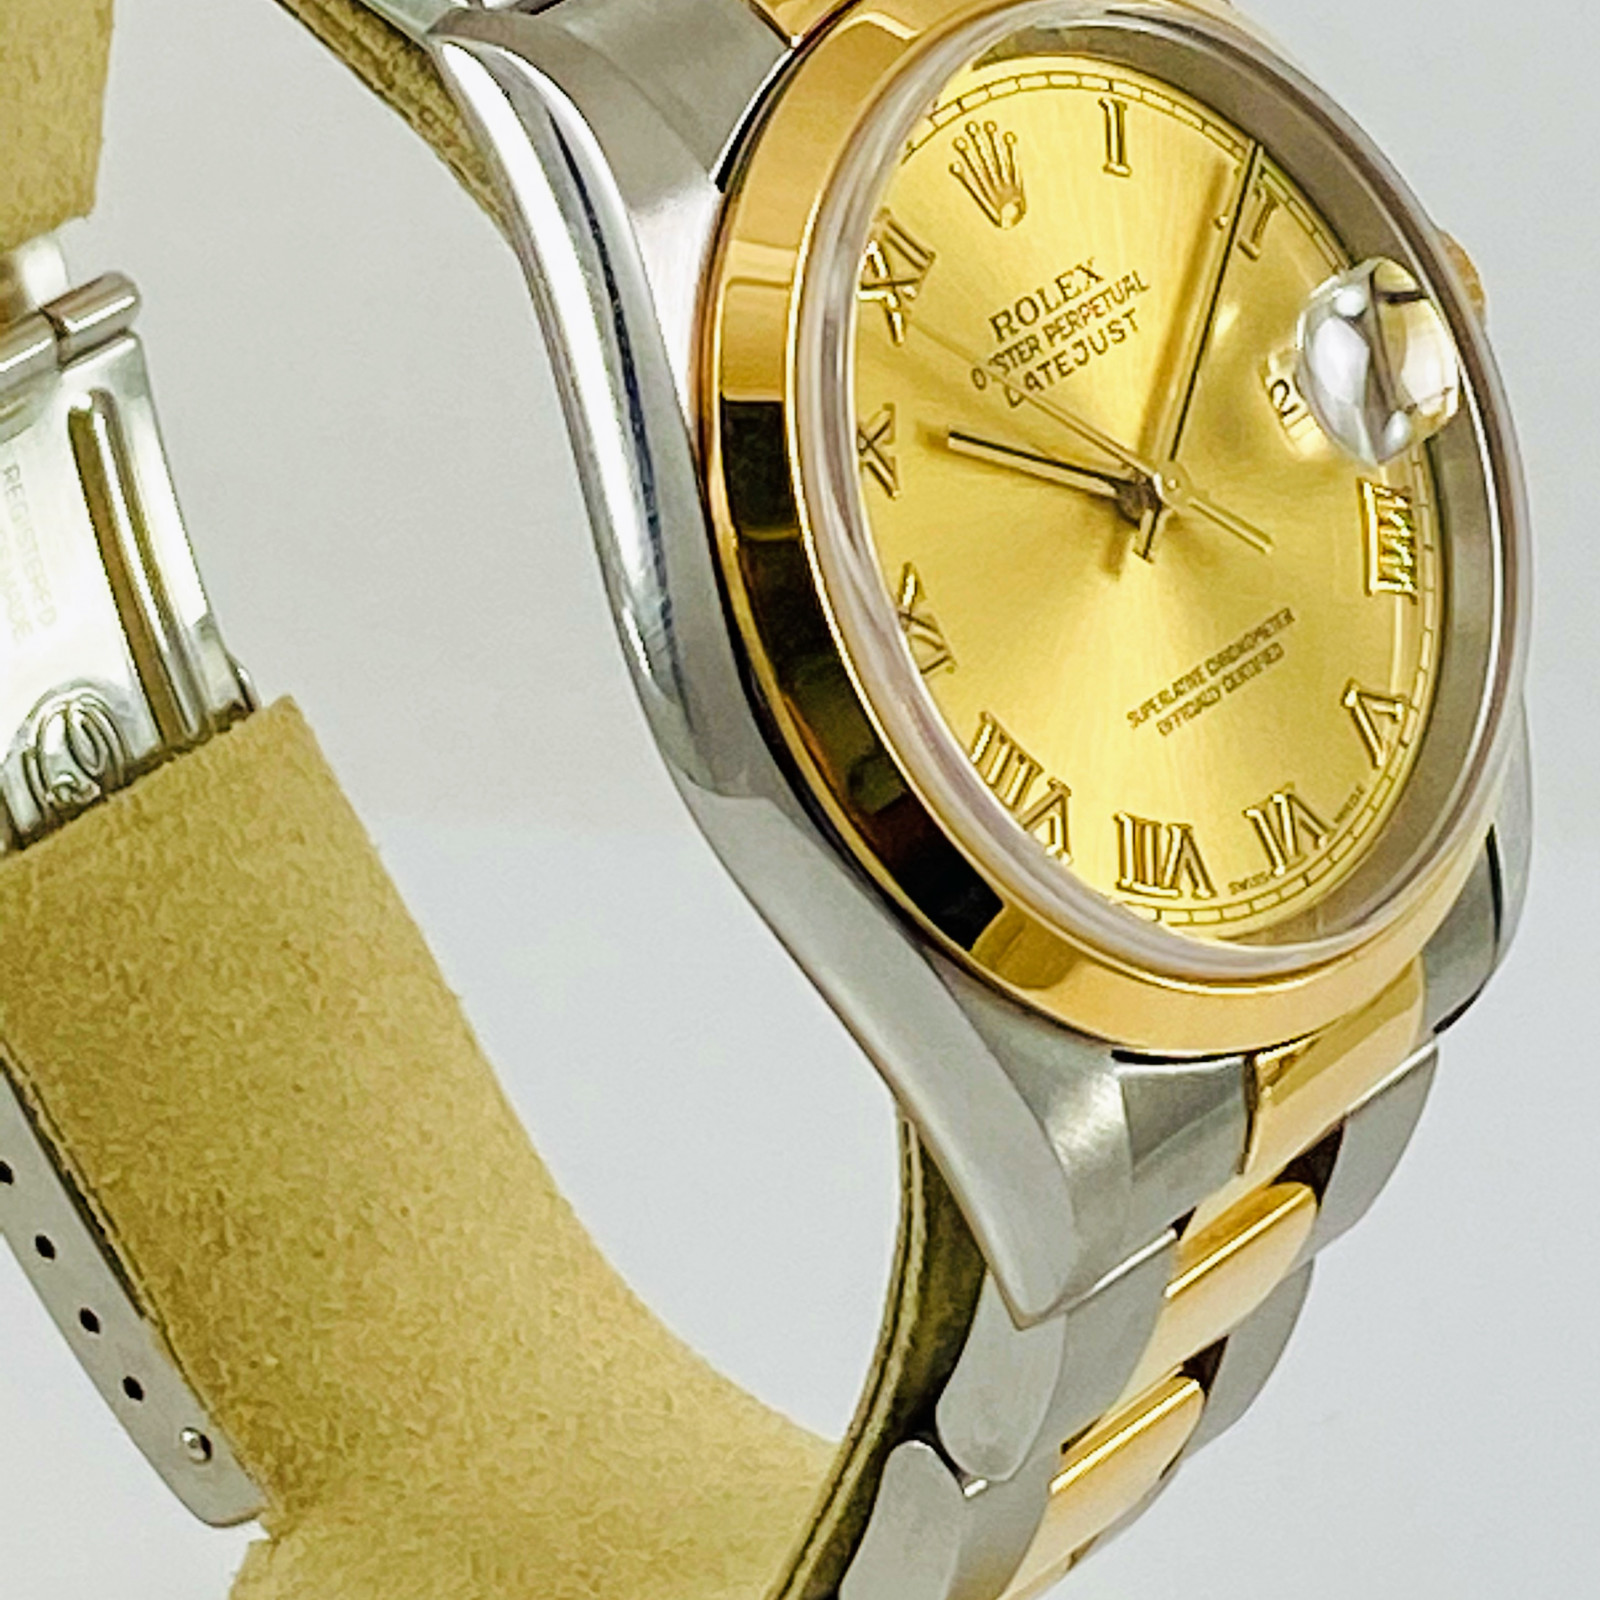 Pre-Owned Rolex Datejust 16203 Stainless Steel, 18kt Yellow Gold & Stainless Steel 36 mm Roman